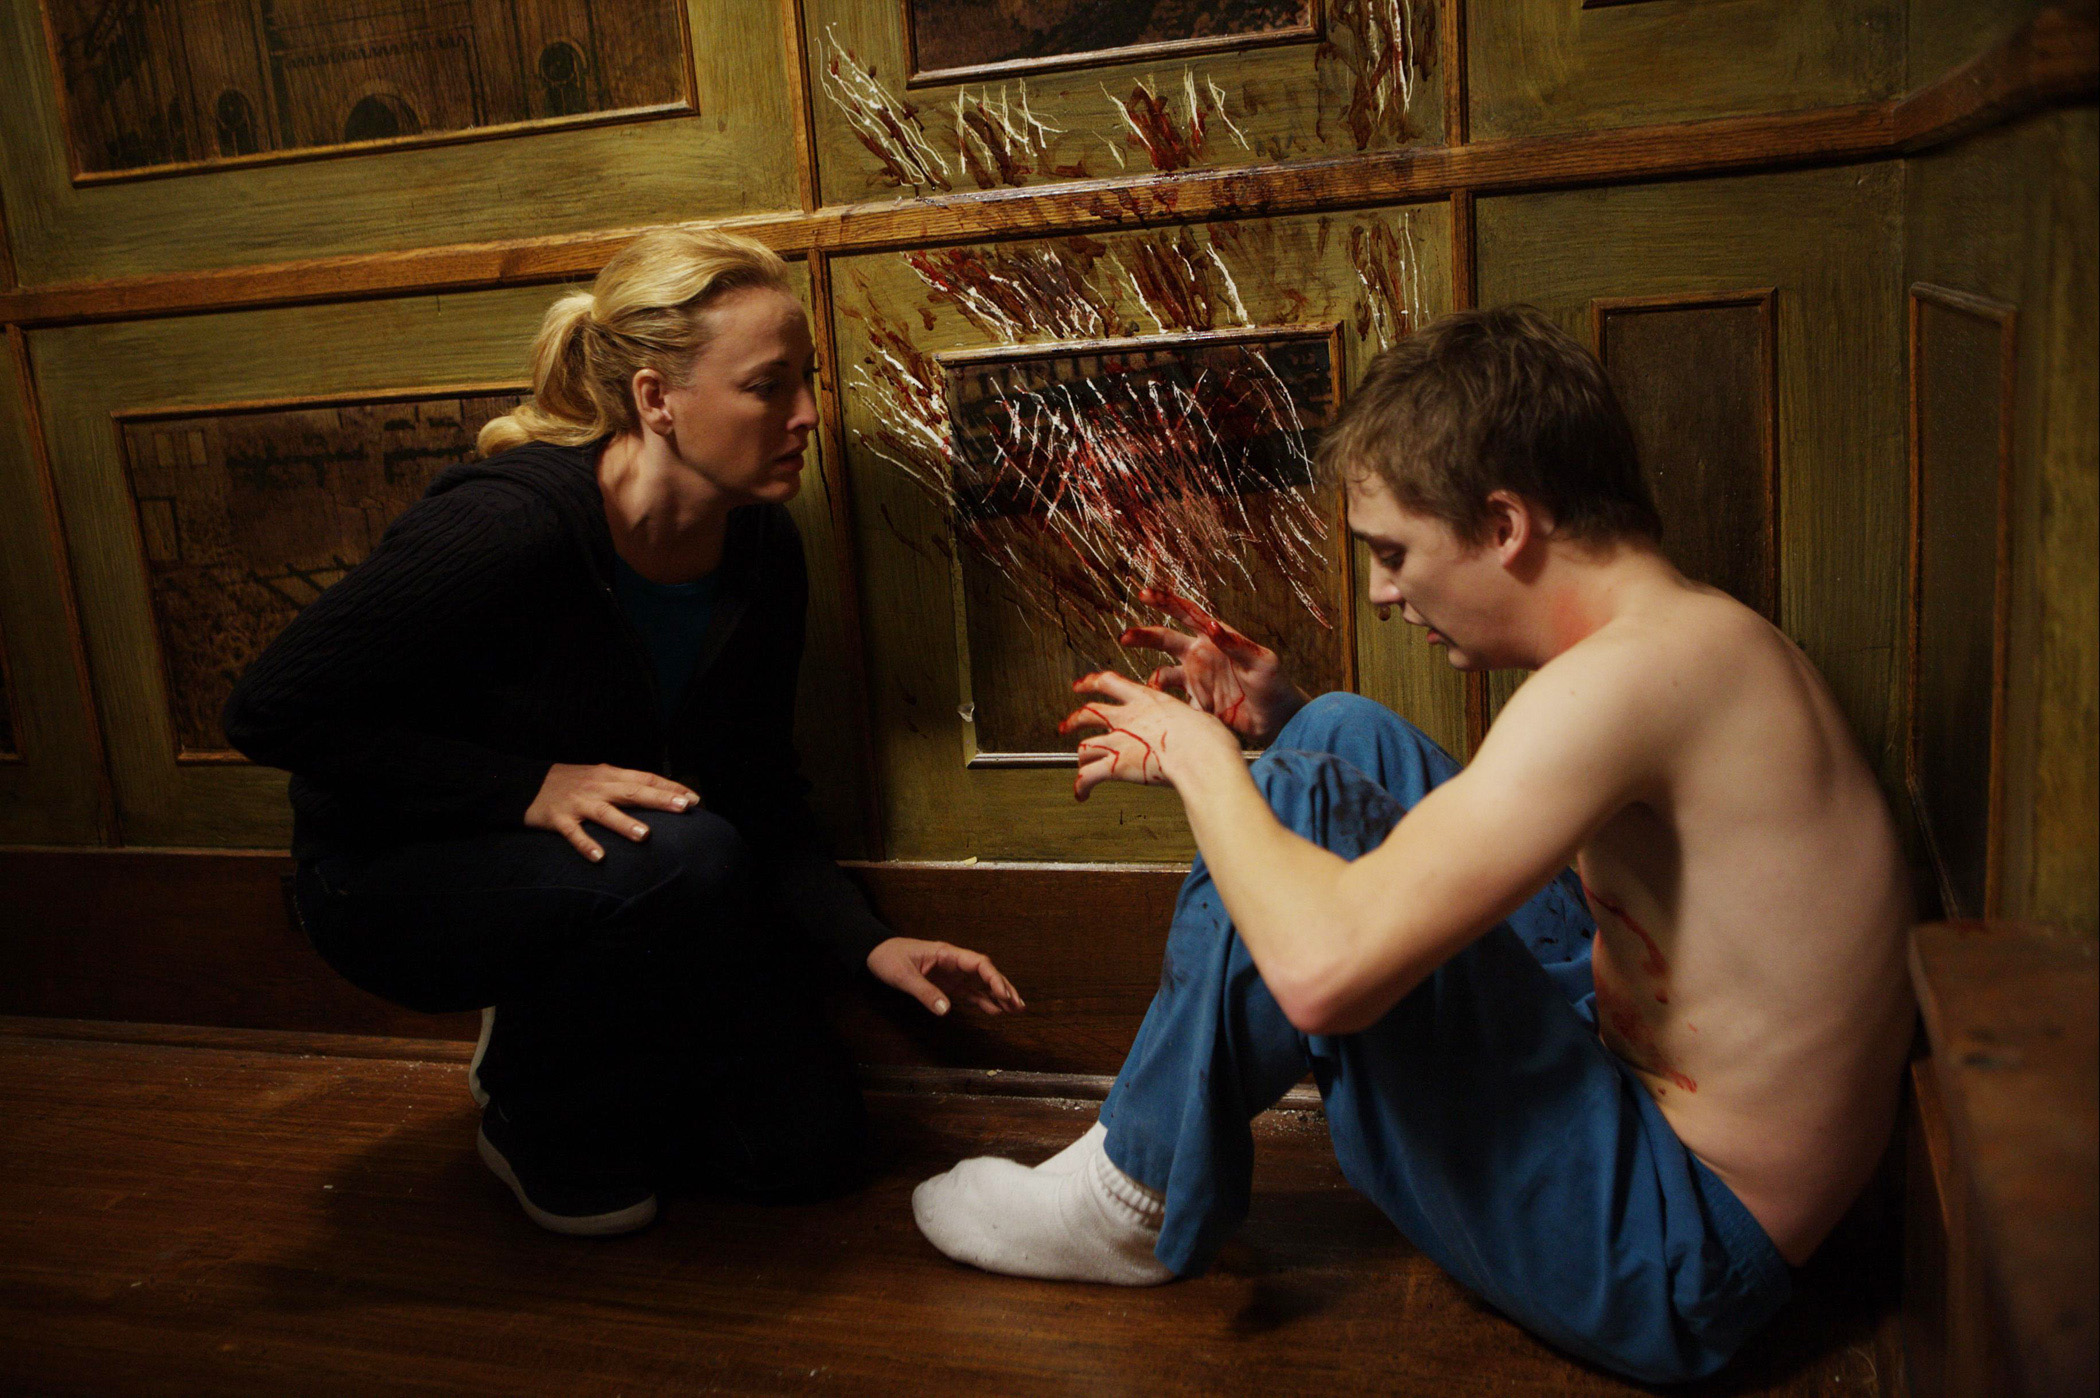 """Virginia Madsen, left, and Kyle Gallner, right, star in the horror thriller """"The Haunting in Connecticut."""""""